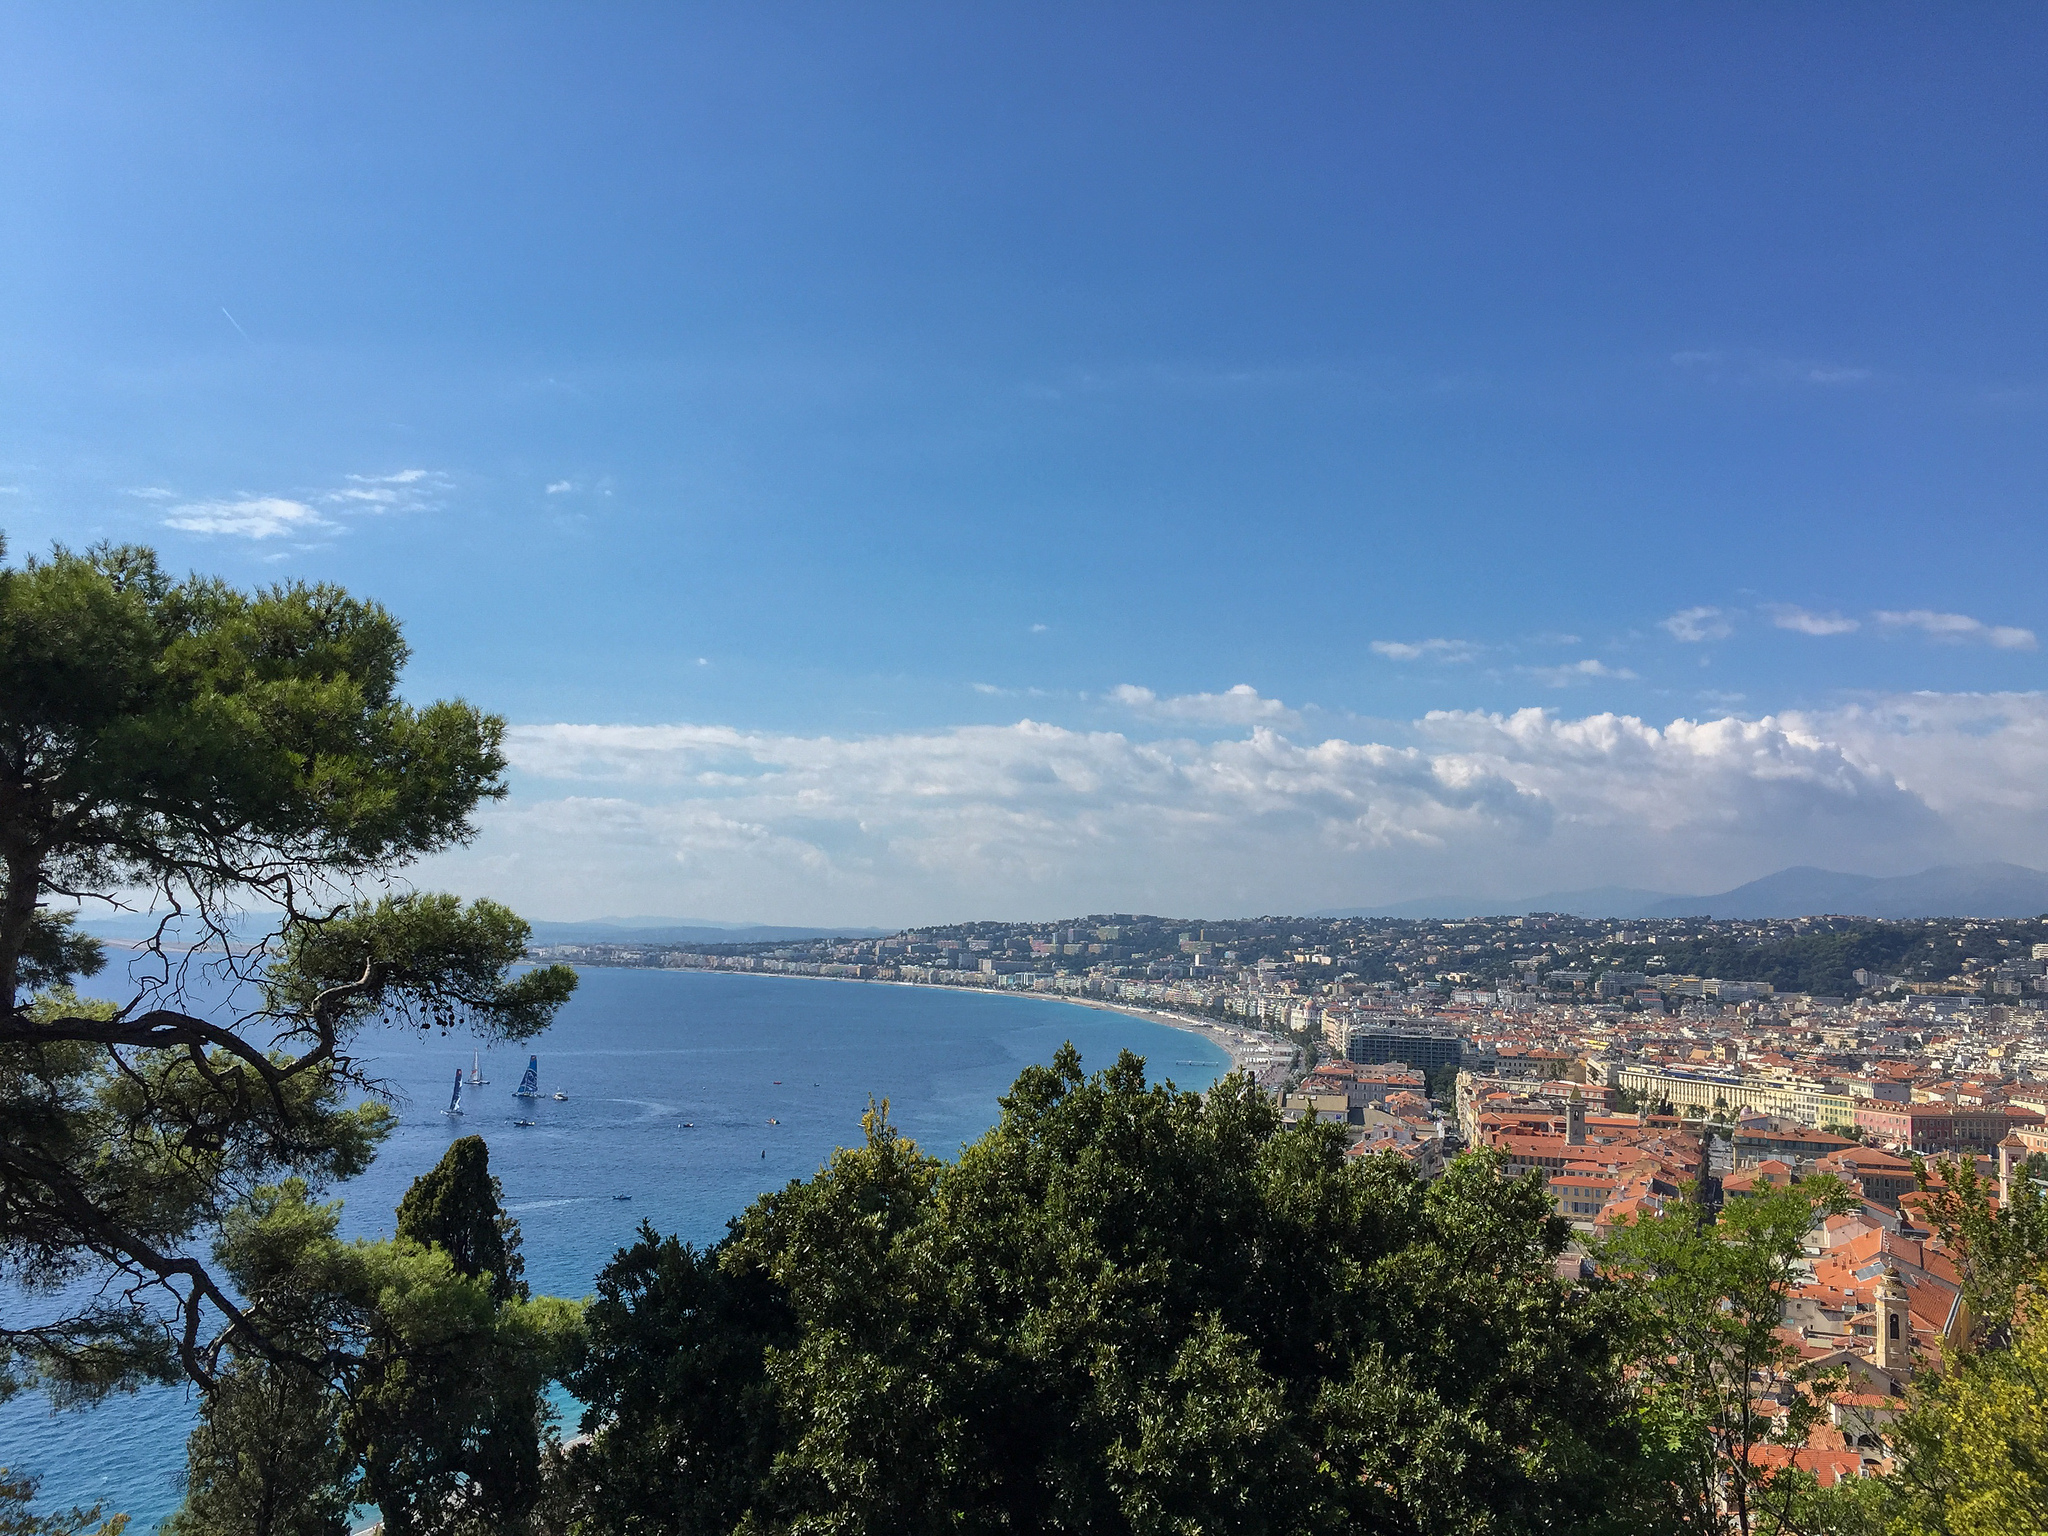 from Limone Piemonte to Nice by train